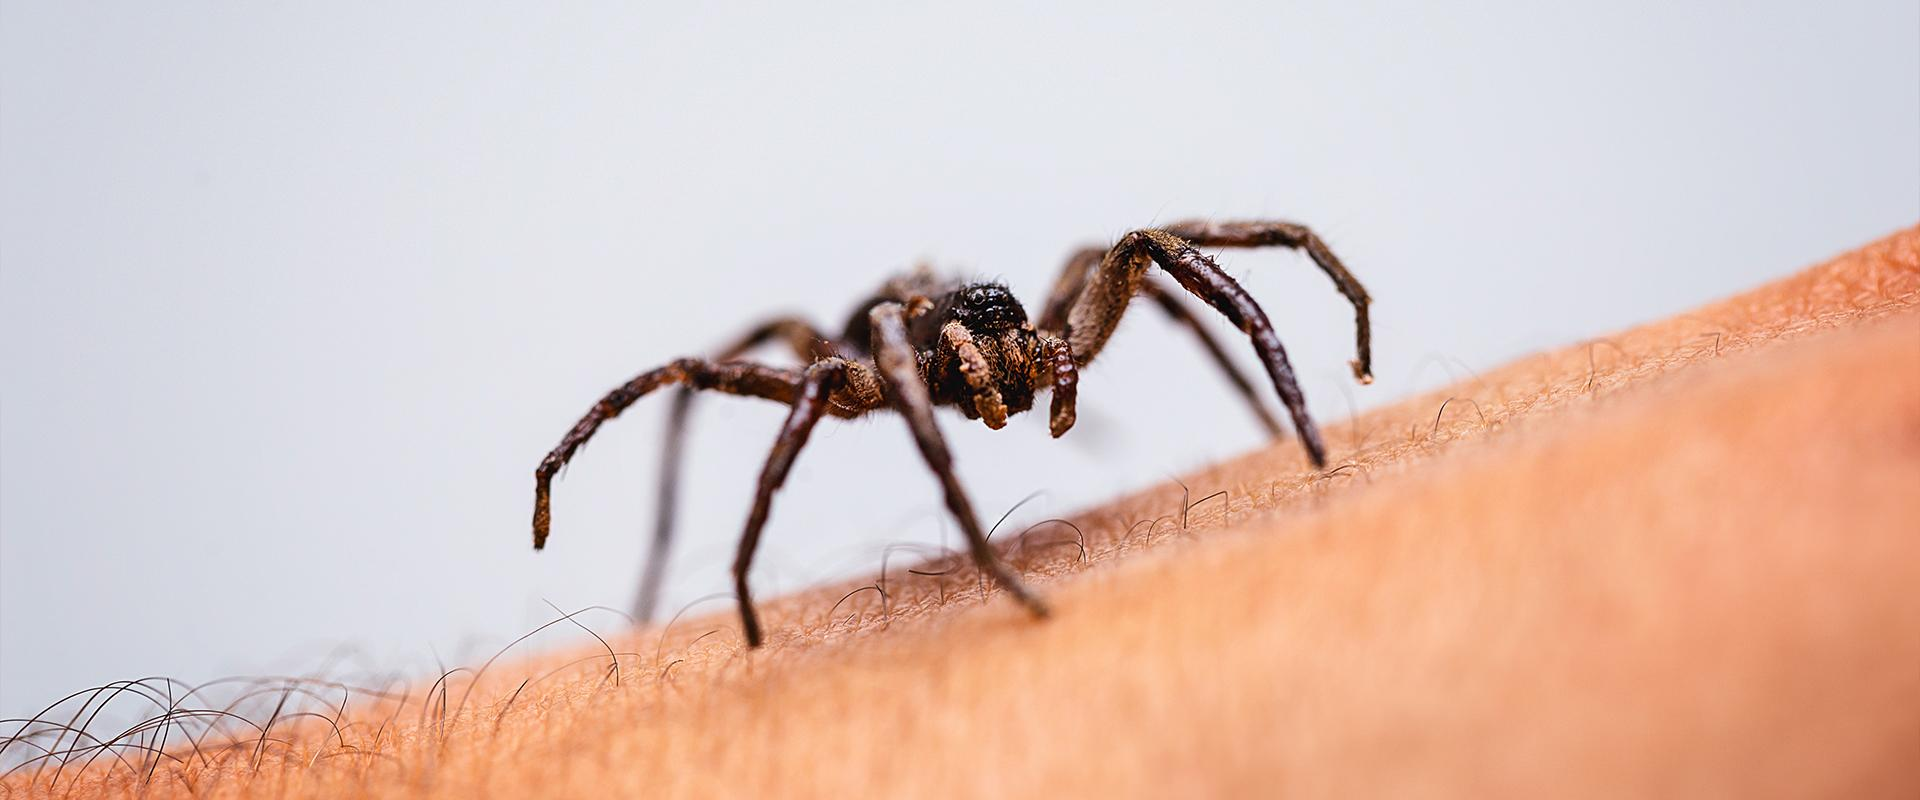 spider on a persons arm in meridian idaho